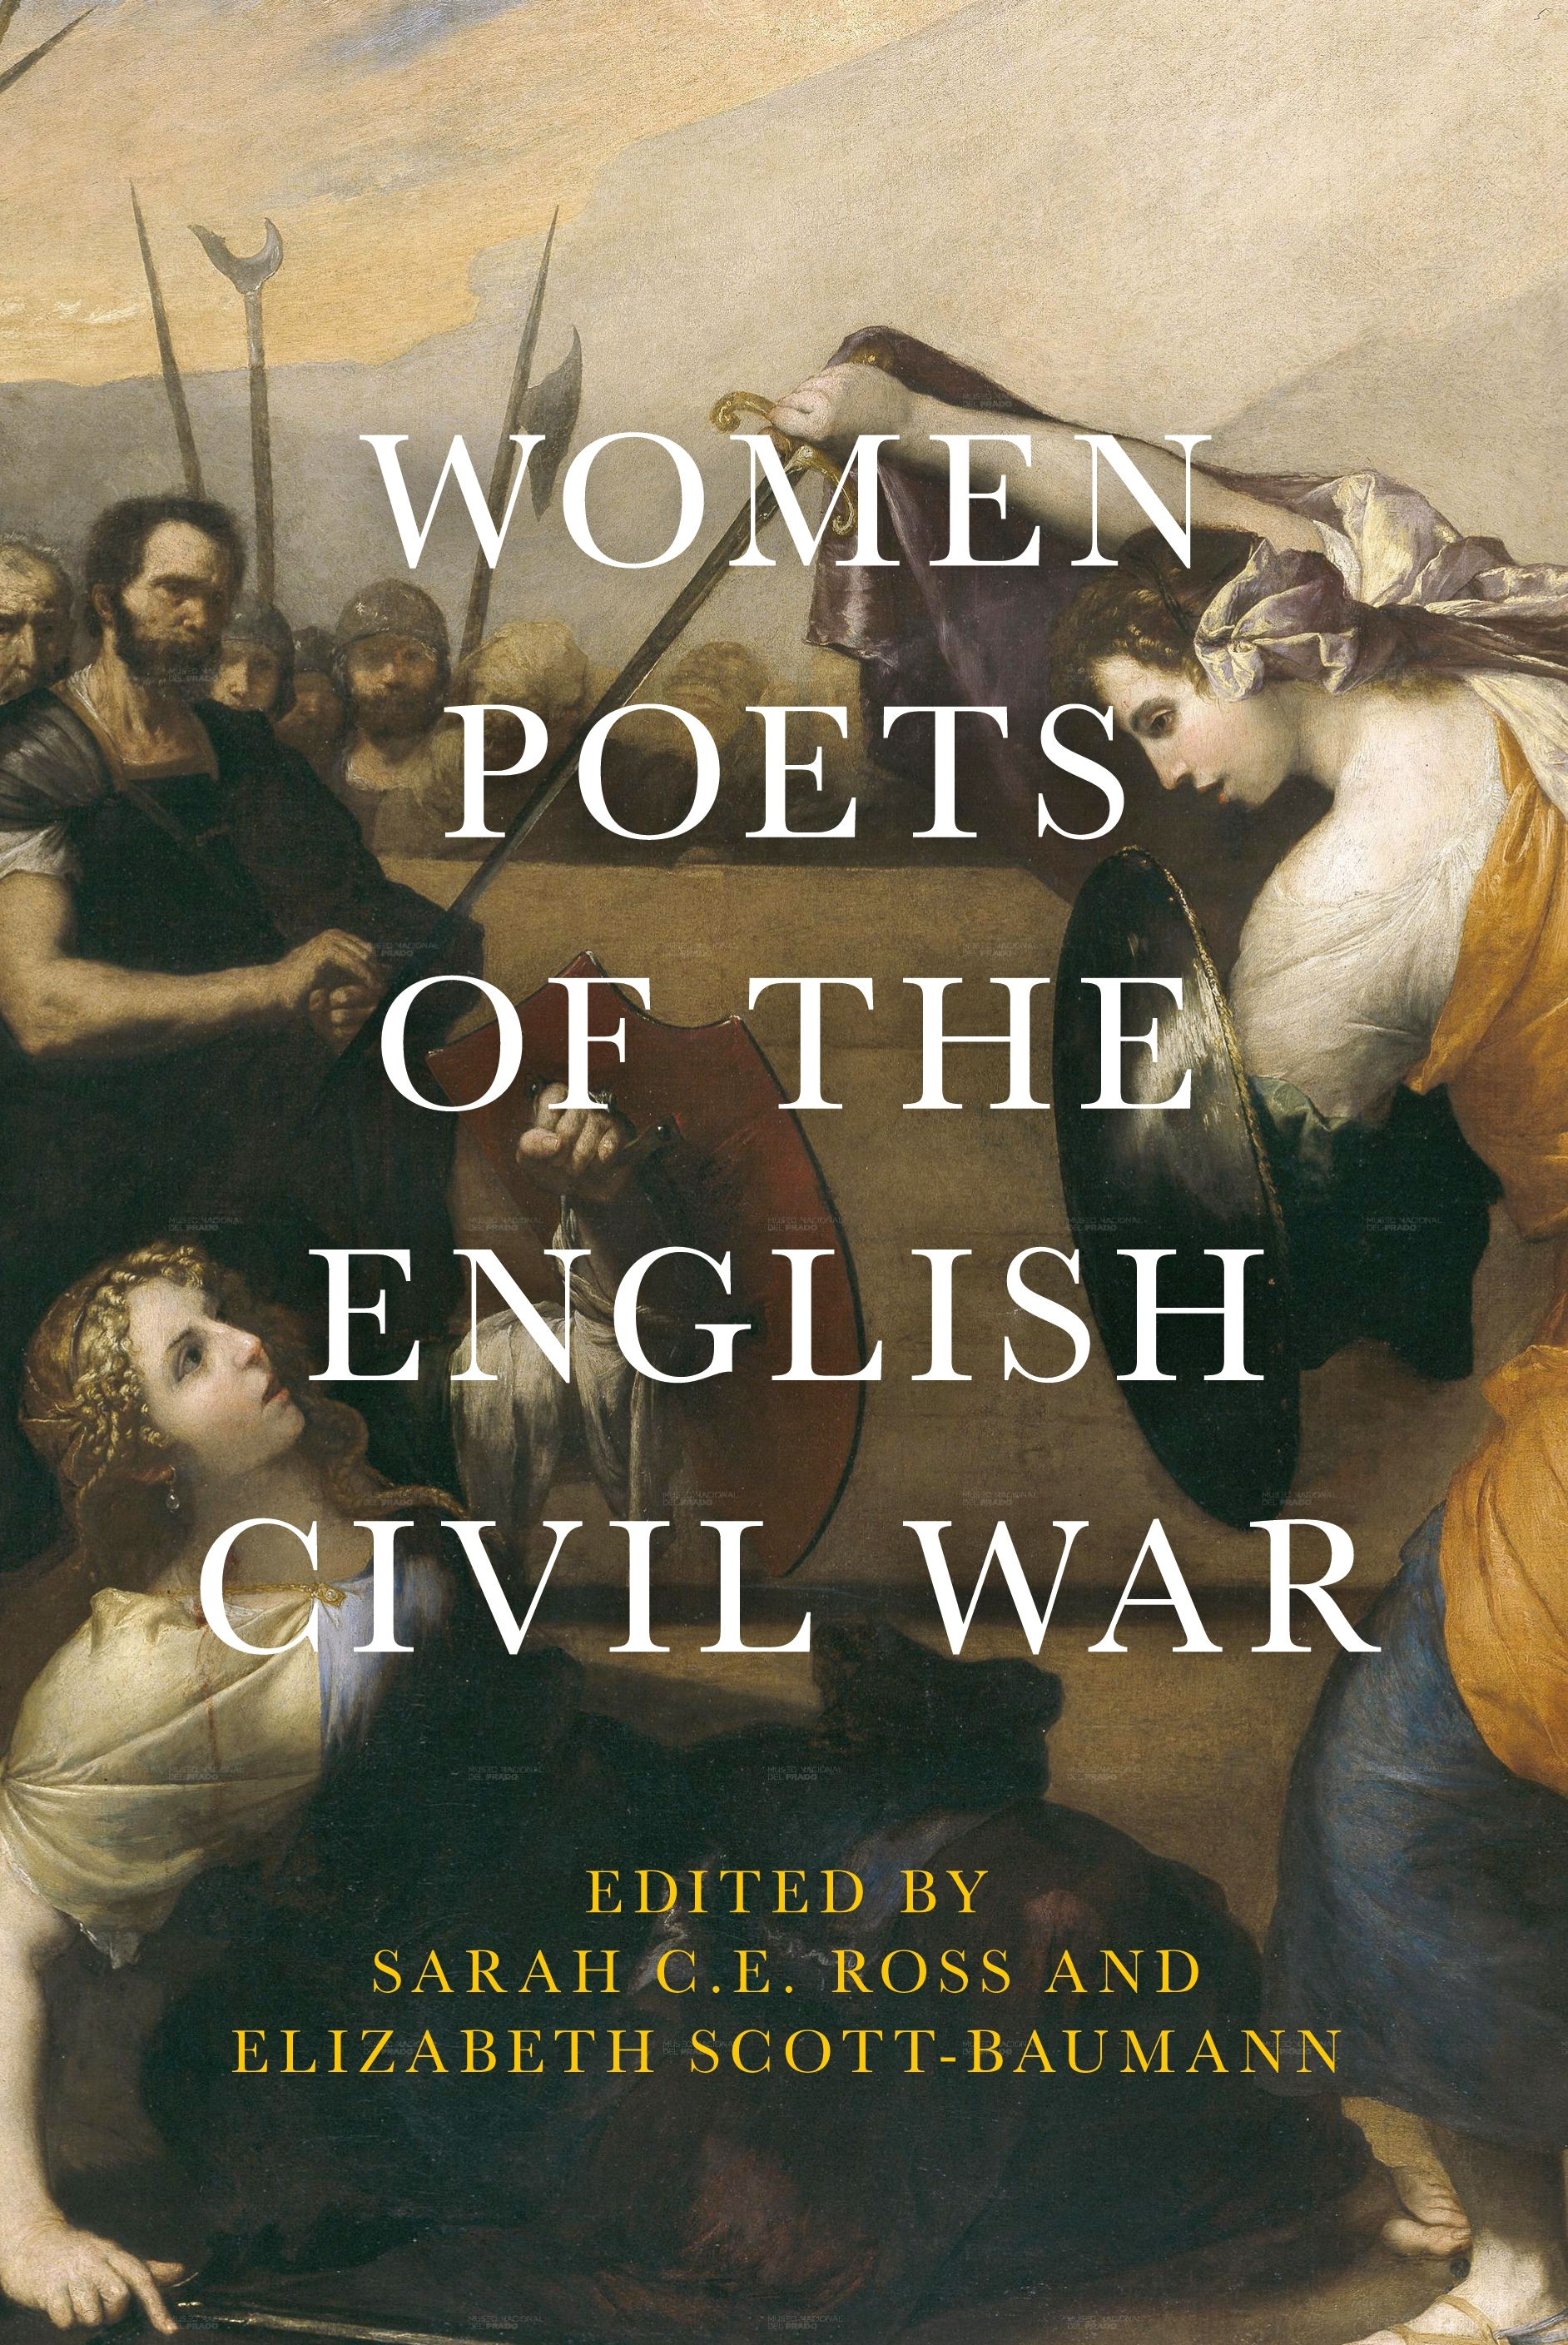 Women poets of the English Civil War is available to pre-order now.